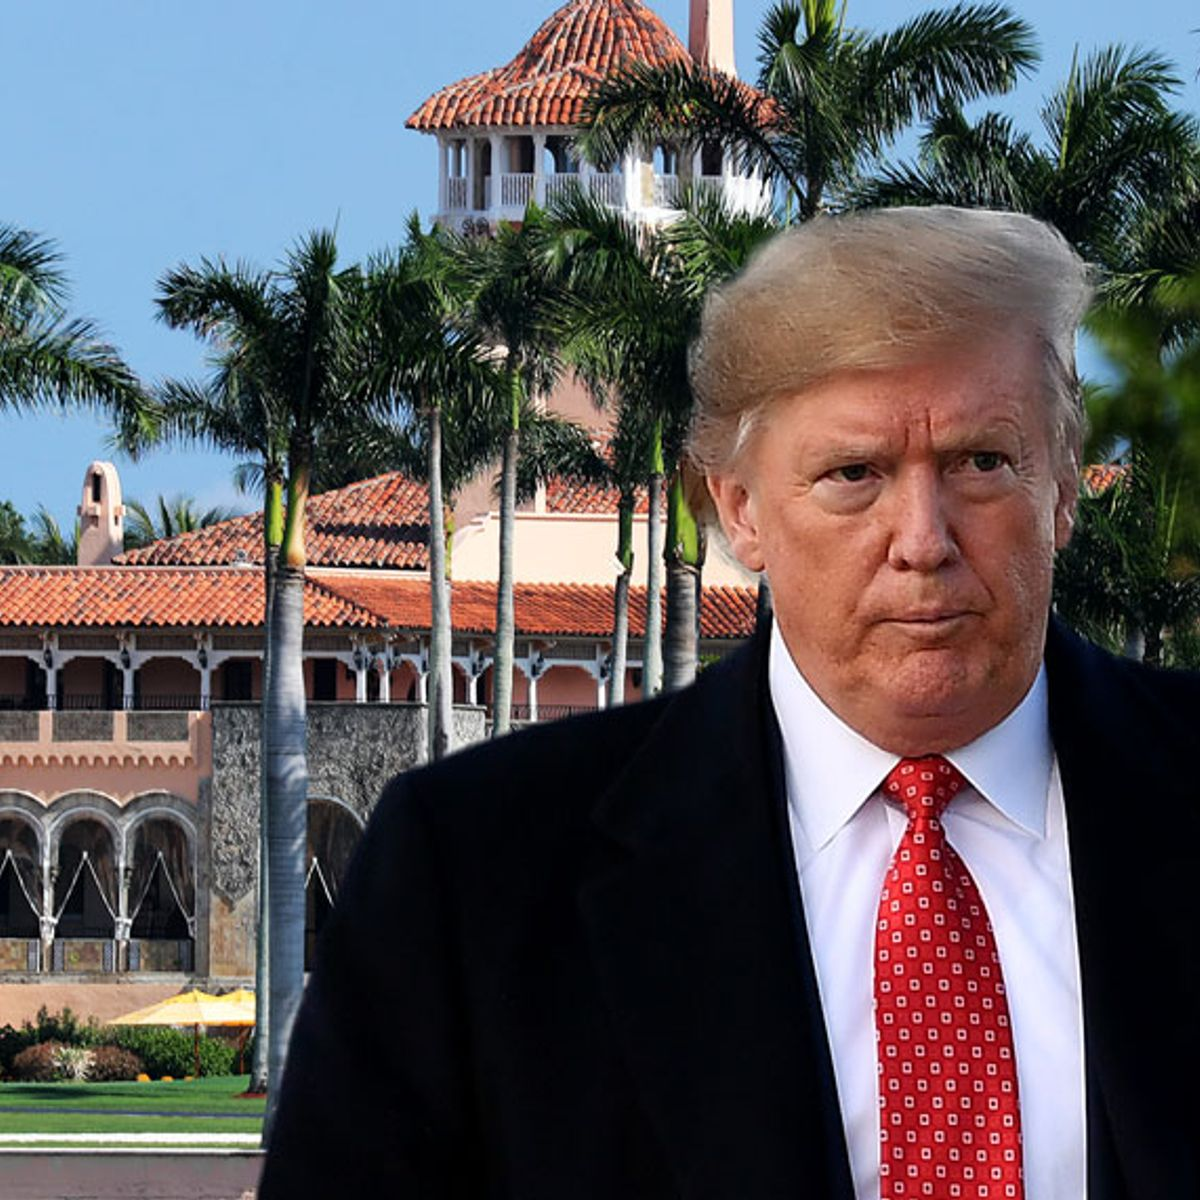 Guess who paid for Donald Trump's crazy-corrupt Mar-a-Lago Christmas party? We did